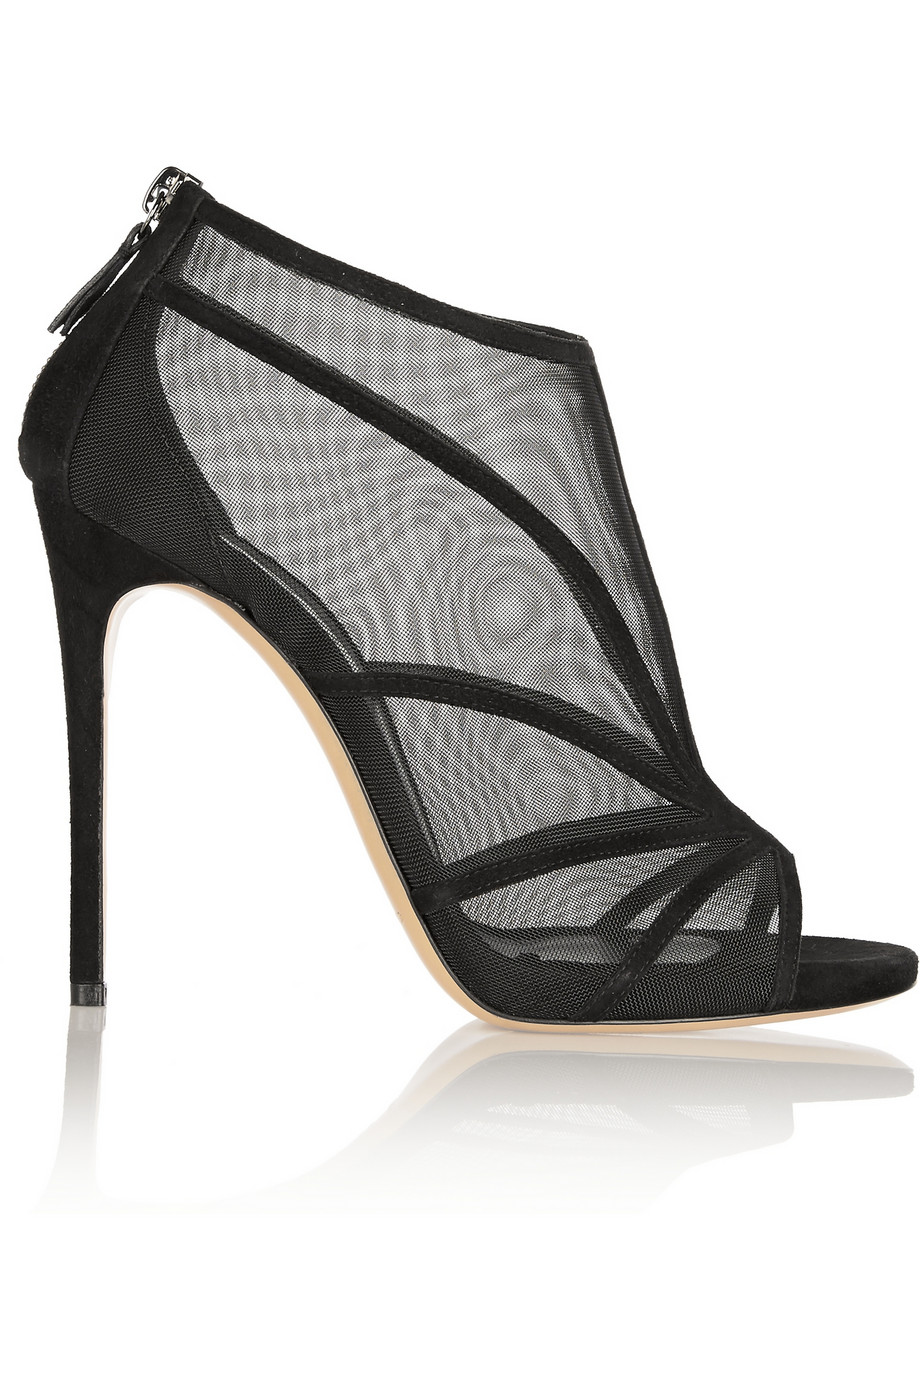 Casadei Suede and Mesh Ankle Boots $388